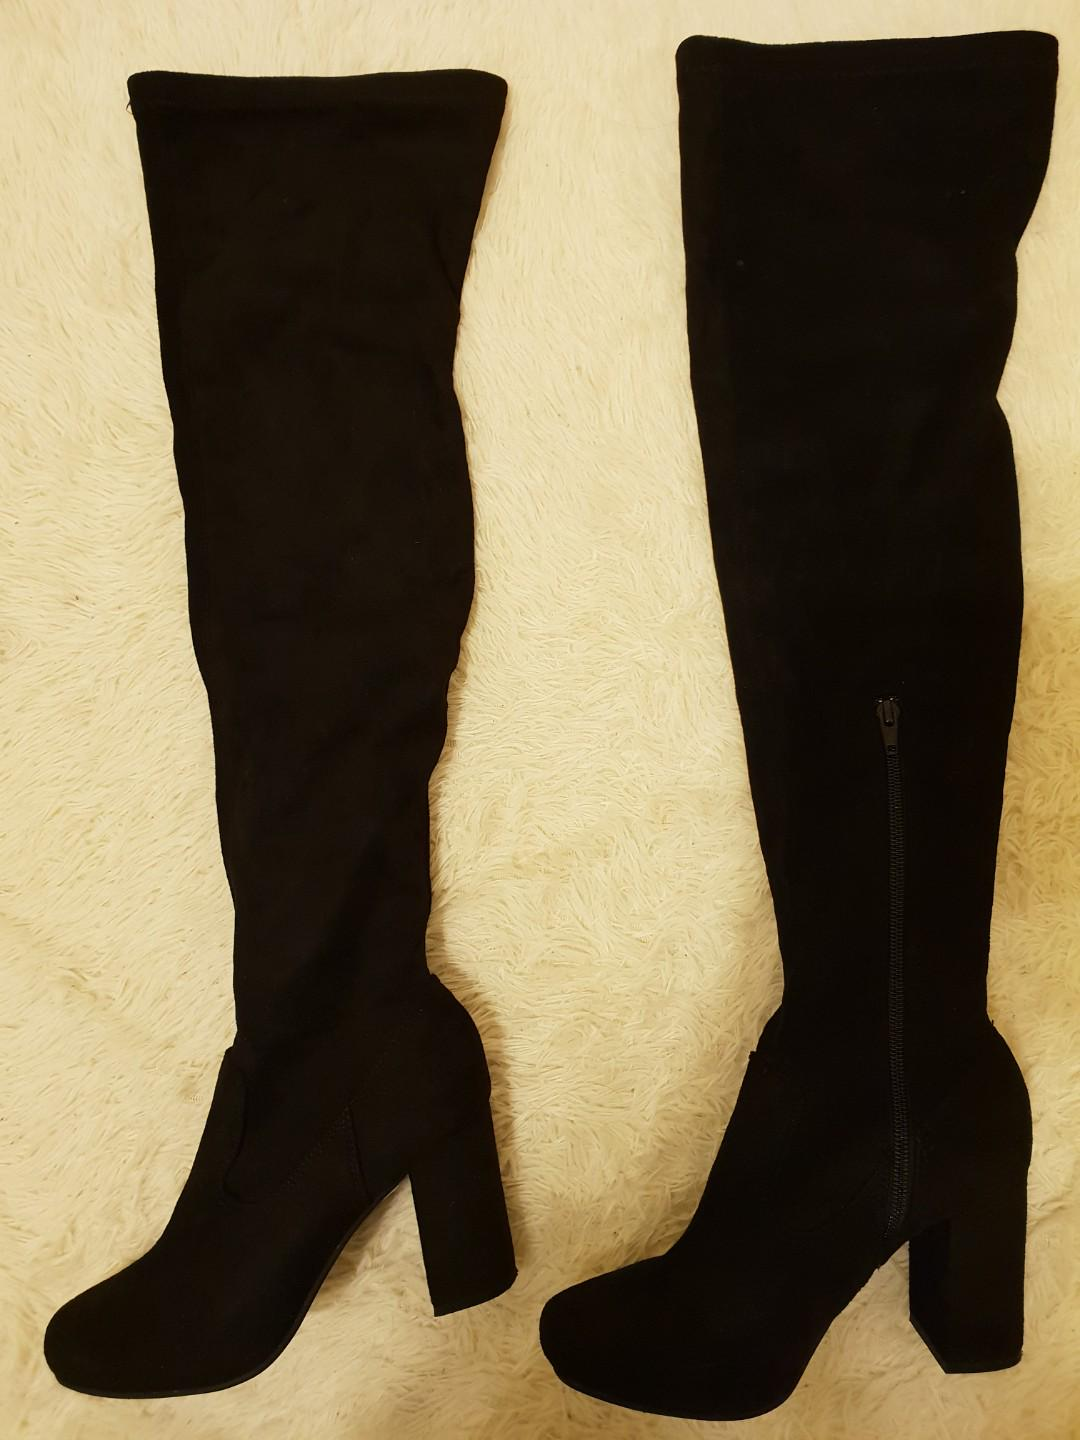 River Island Thigh High Over the Knee Boots - size 6.5/37